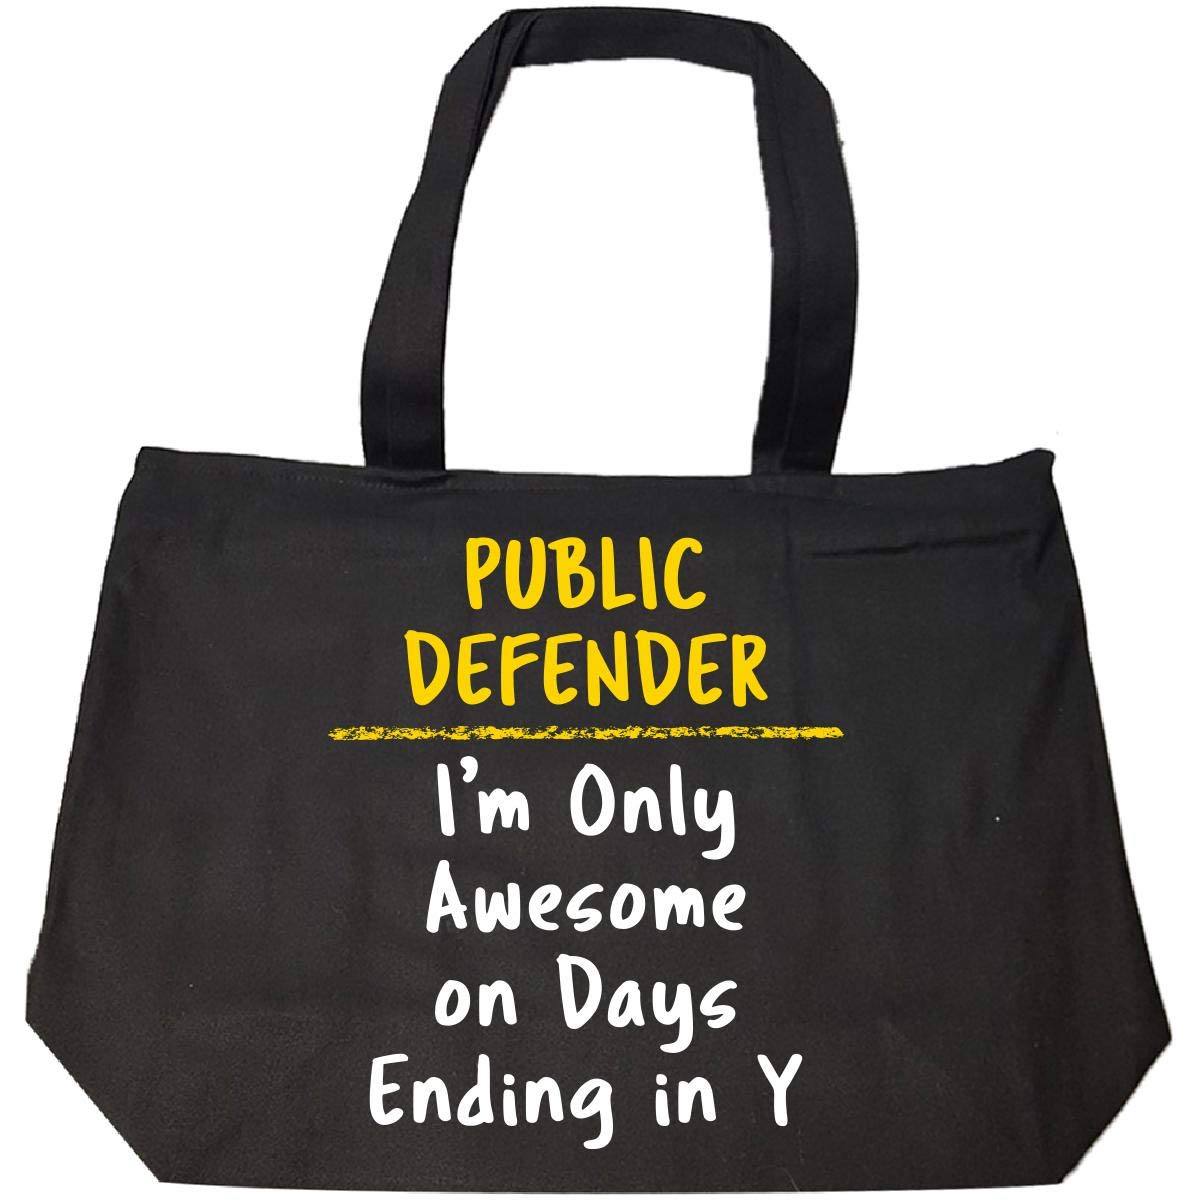 200a8c5652b7 Public Defender Awesome Sarcastic Funny Saying Office Gift - Tote ...